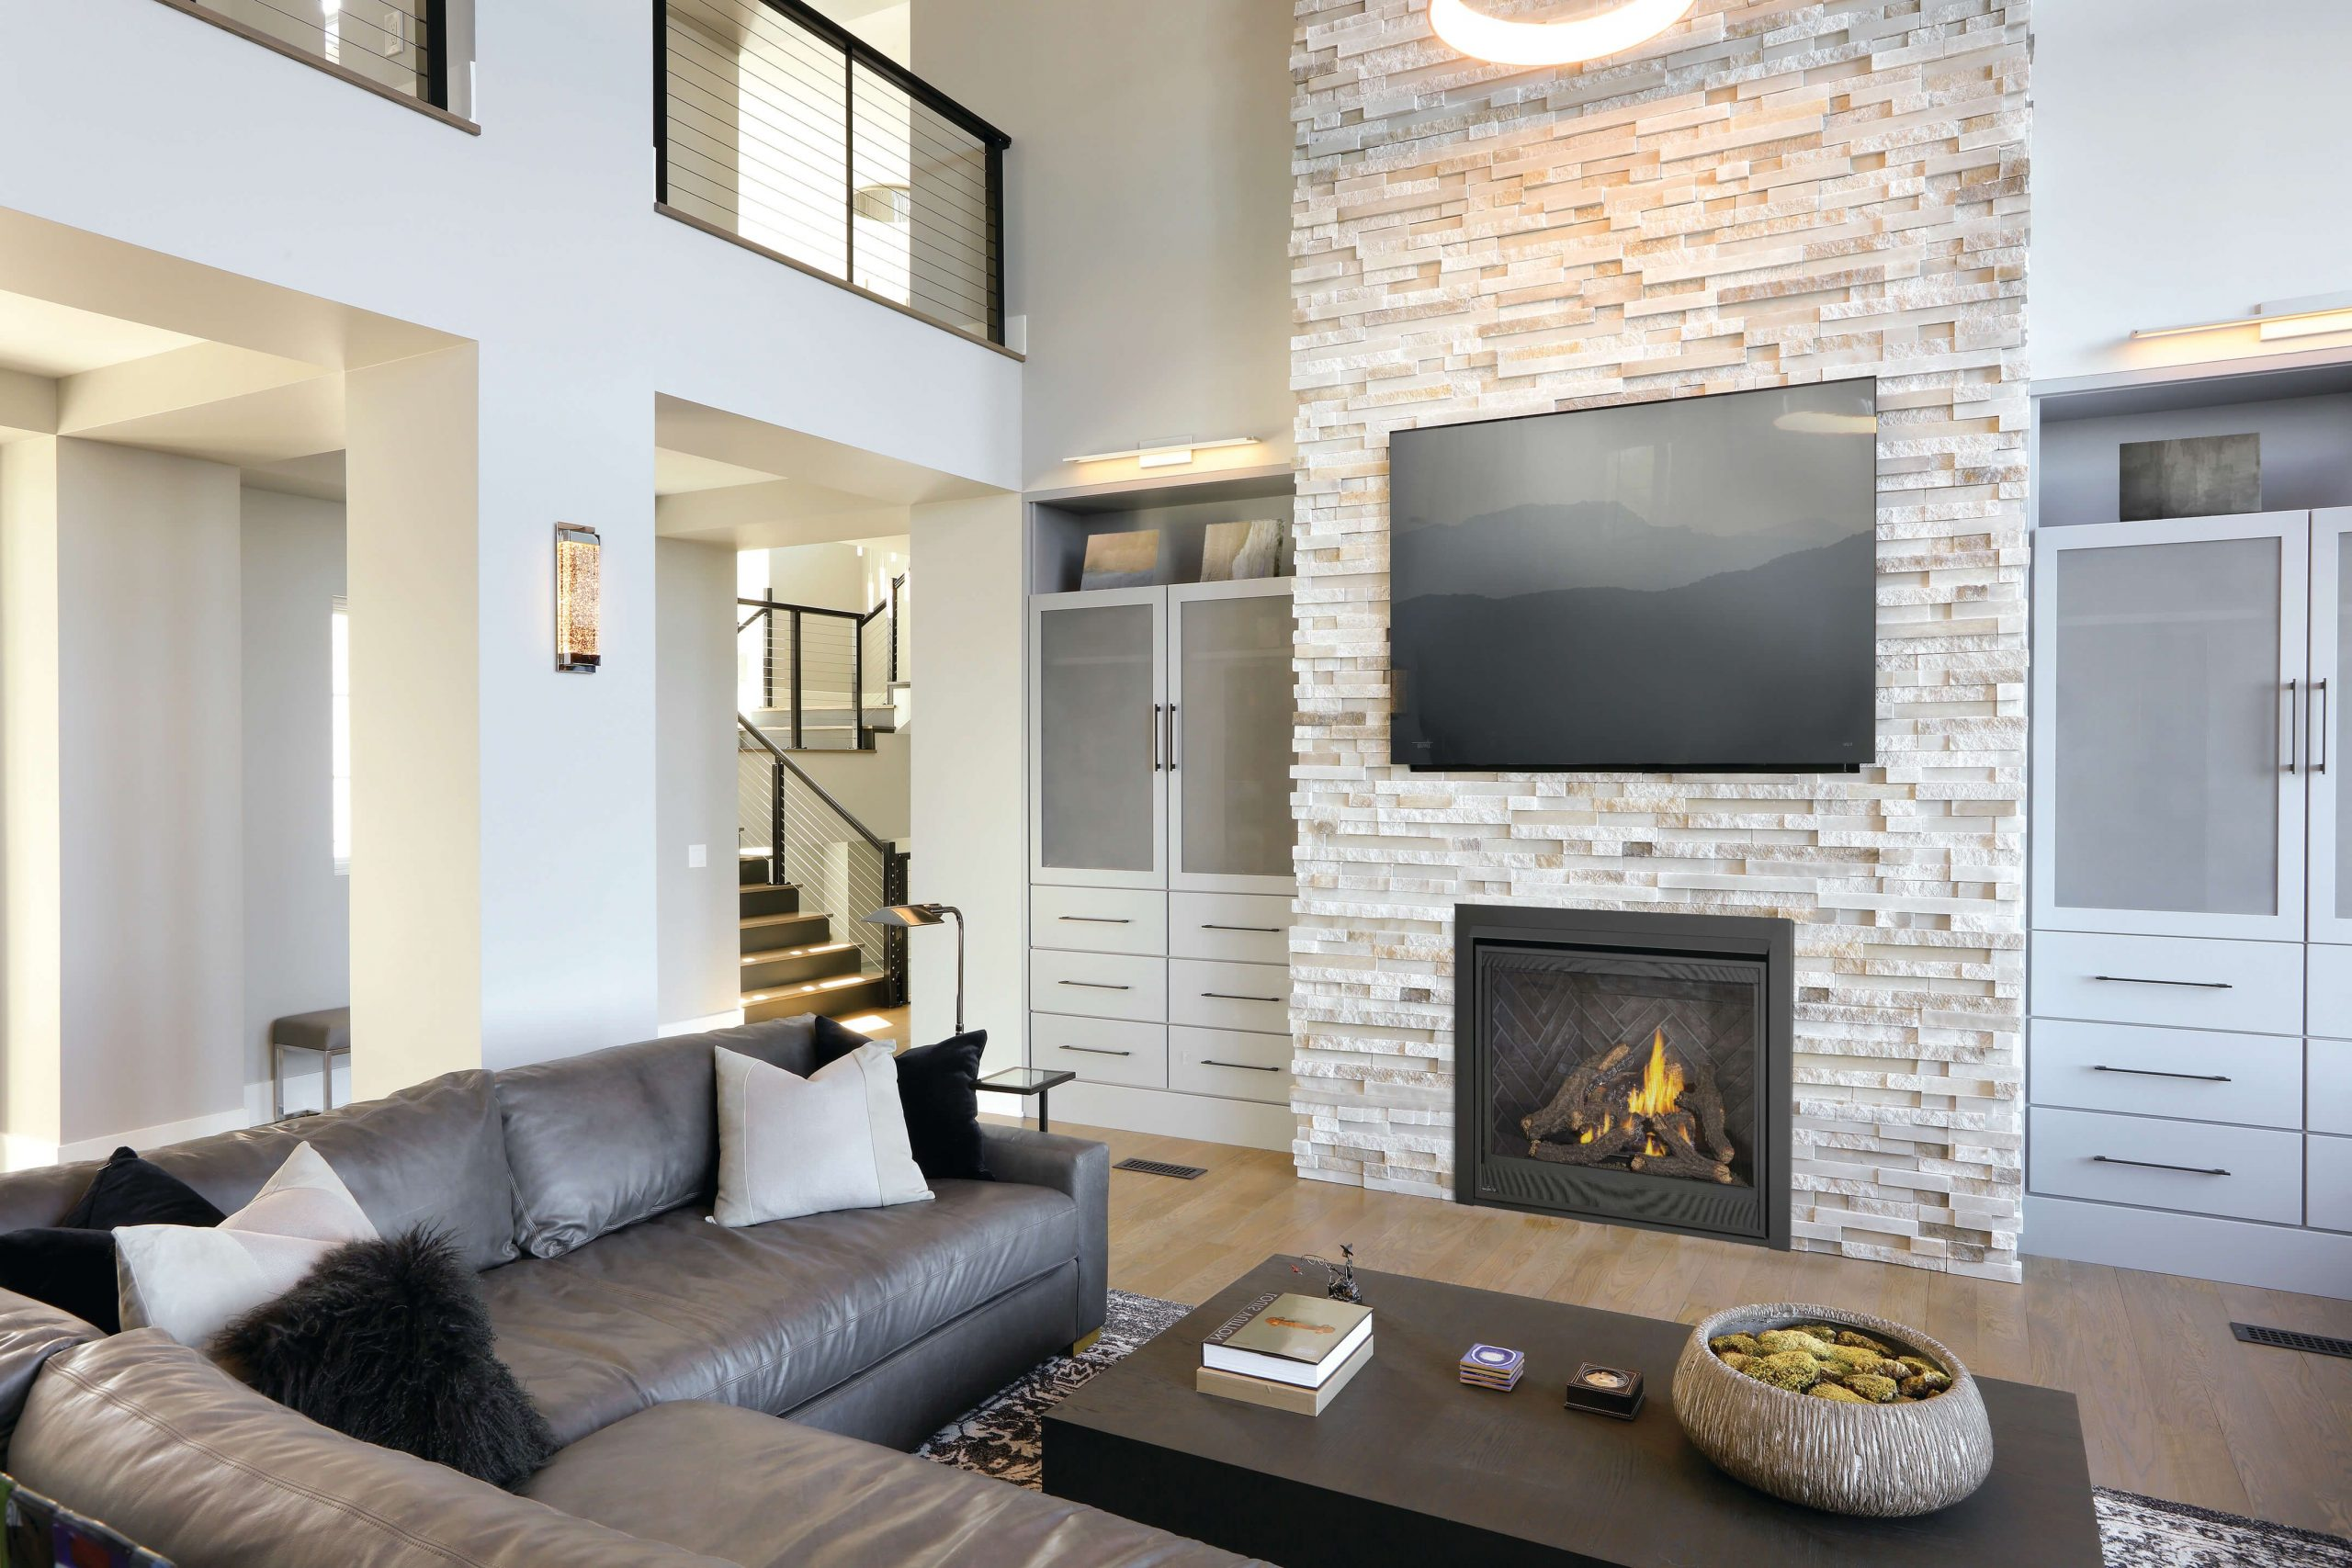 Benefits of Direct Vent Gas Fireplaces